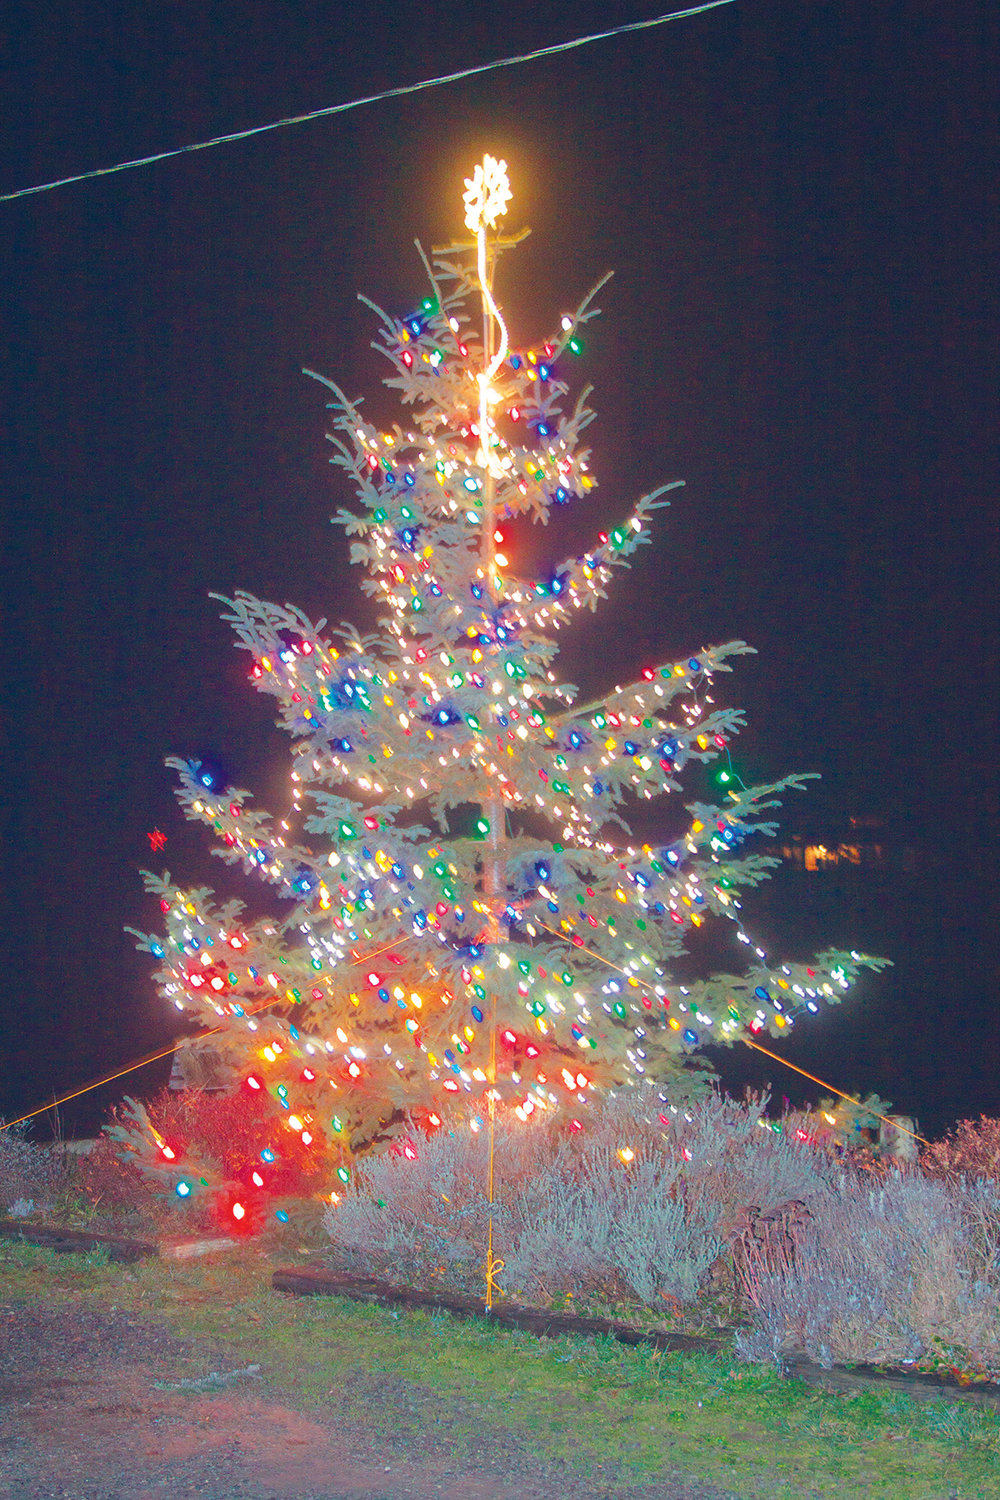 The Christmas tree is lit up across the street from the Nordland General Store on the evening of Dec. 1.